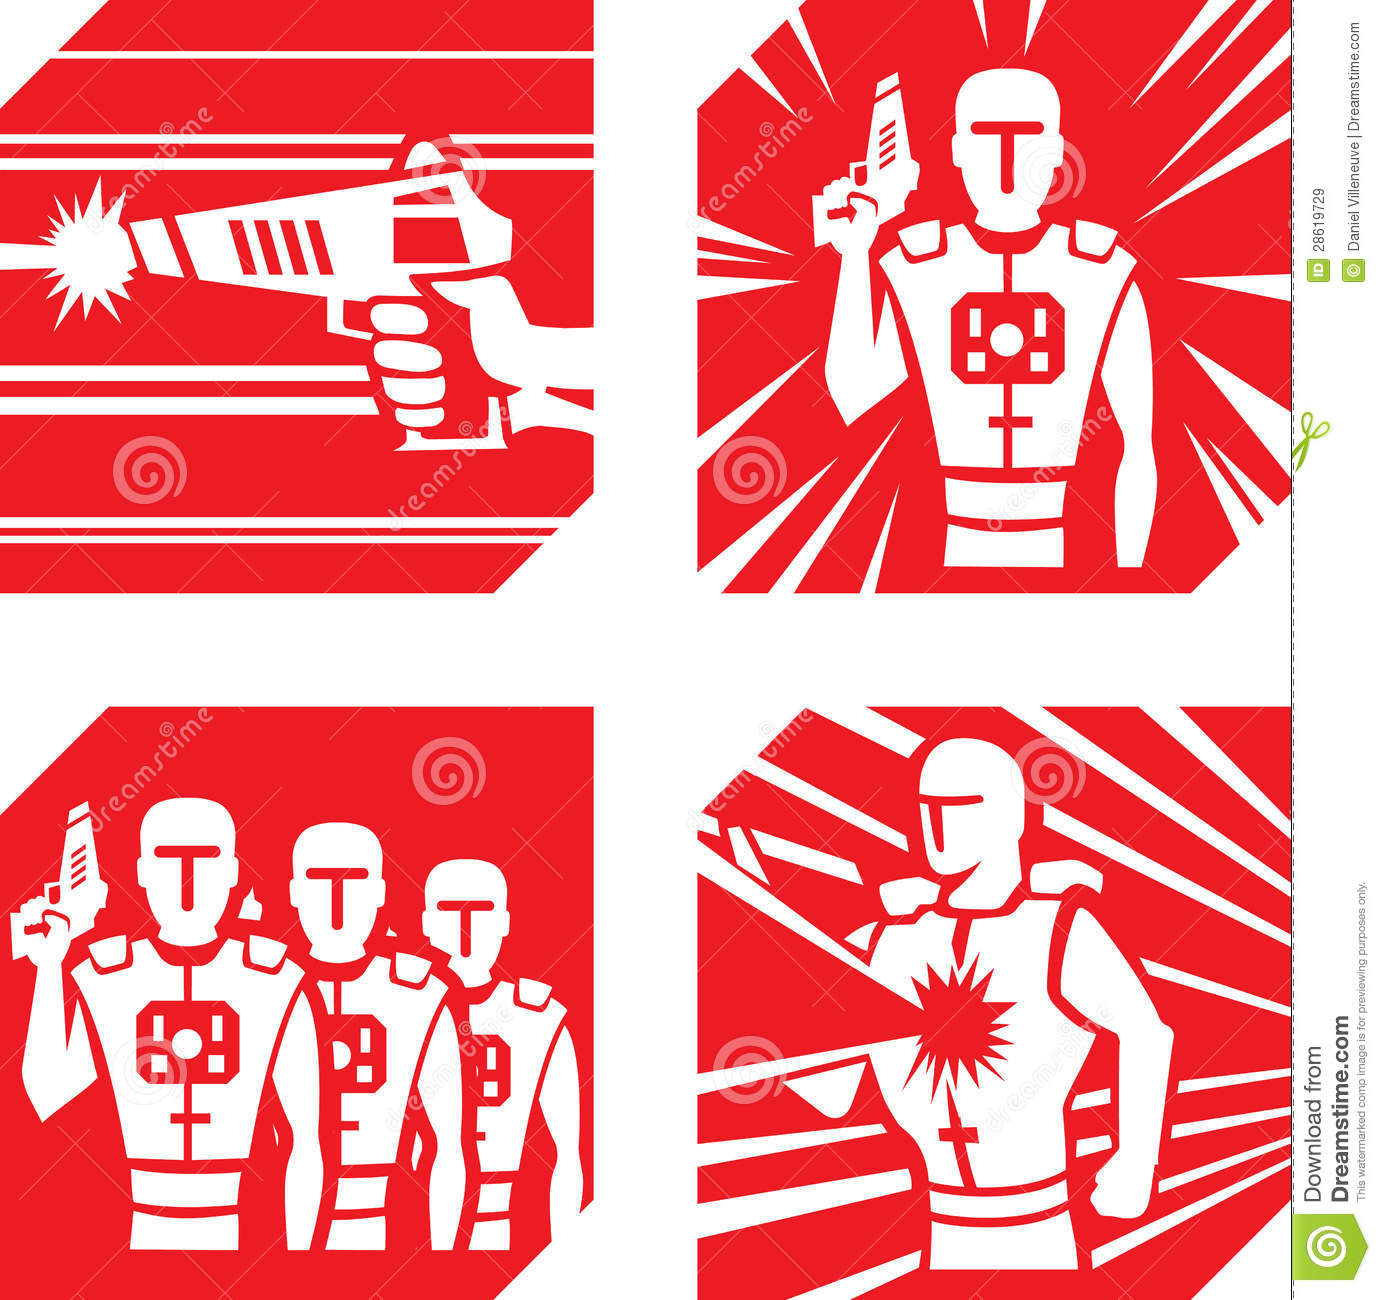 Laser Tag Icons Royalty Free Stock Images - Image: 28619729